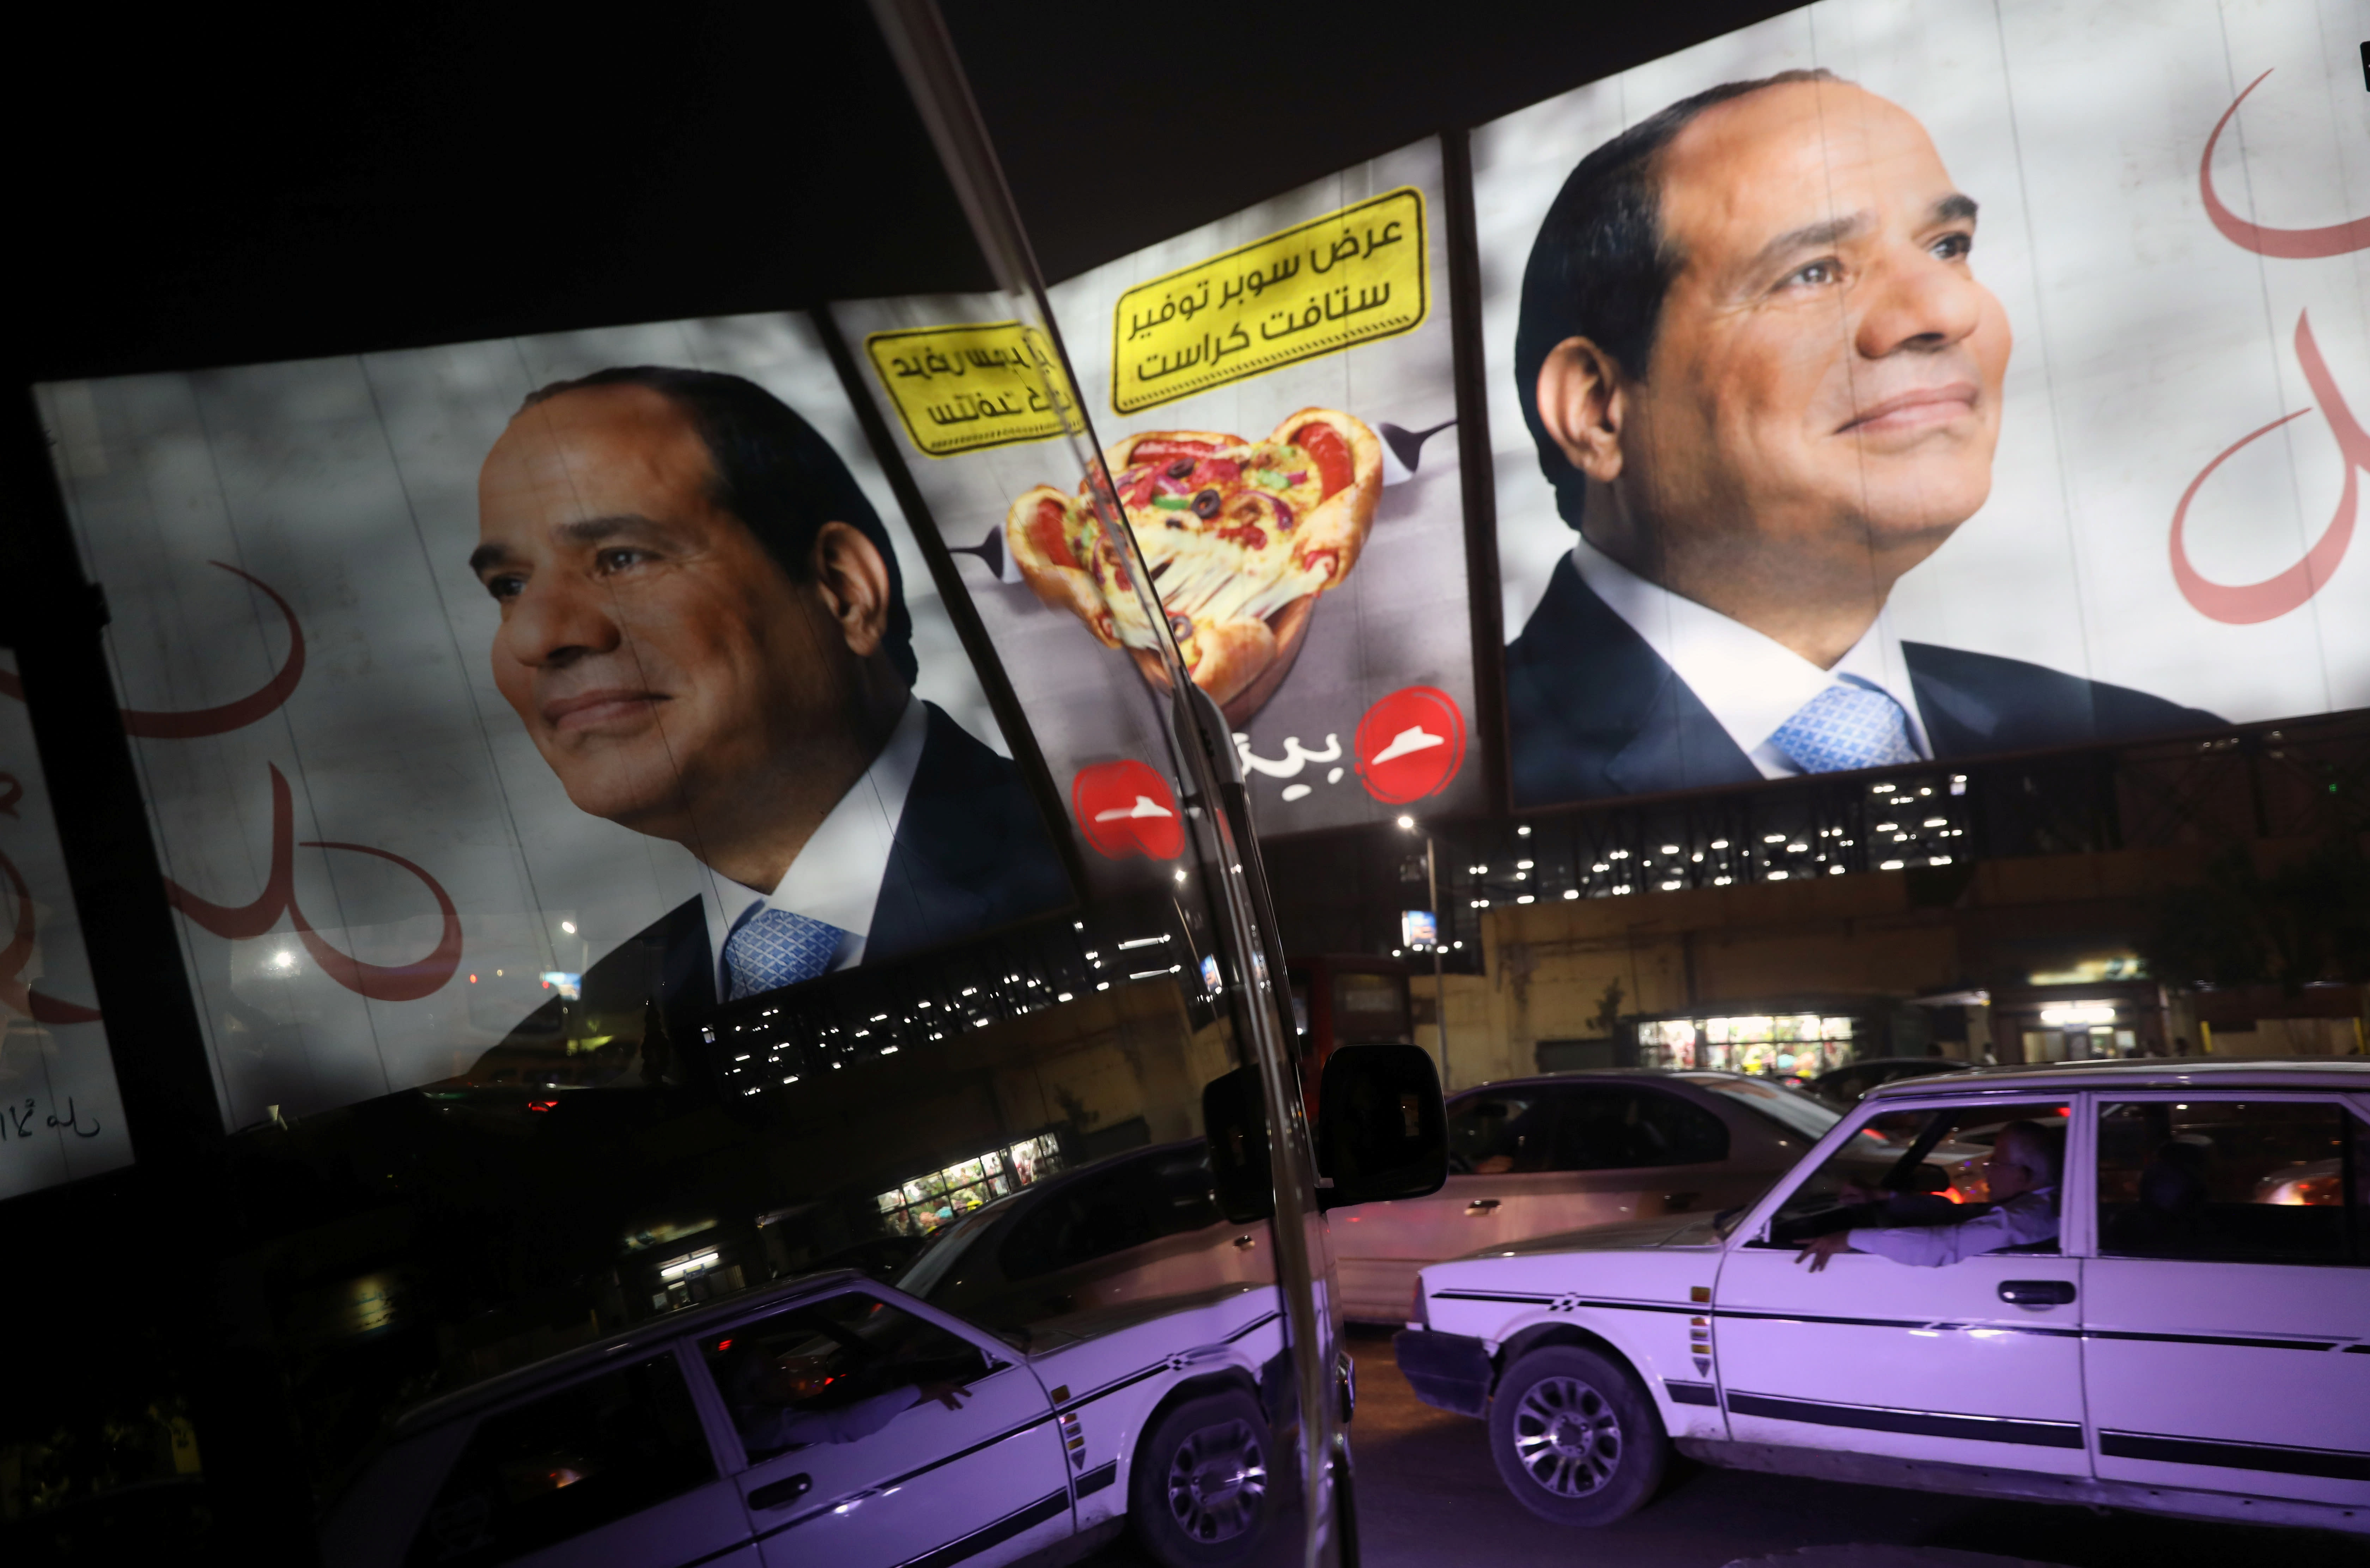 People walk in front of banners with Egypt's President Abdel Fattah al-Sisi during preparations for the presidential election in Cairo, Egypt (AMMAR AWAD/REUTERS)